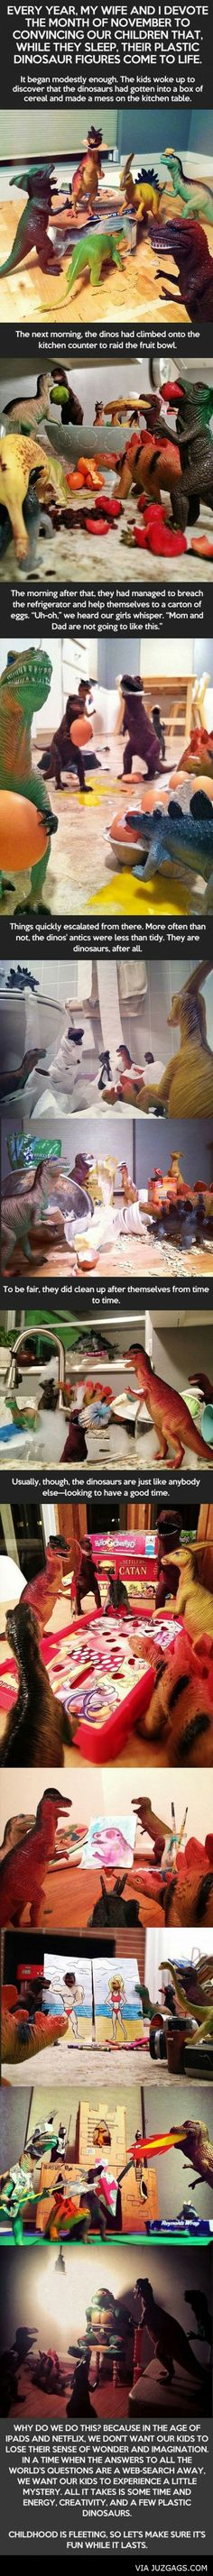 Every year, my wife and I devote the month of November to convincing our children that, while they sleep, their plastic dinosaur figures come to life... - Via: JuzGags.com